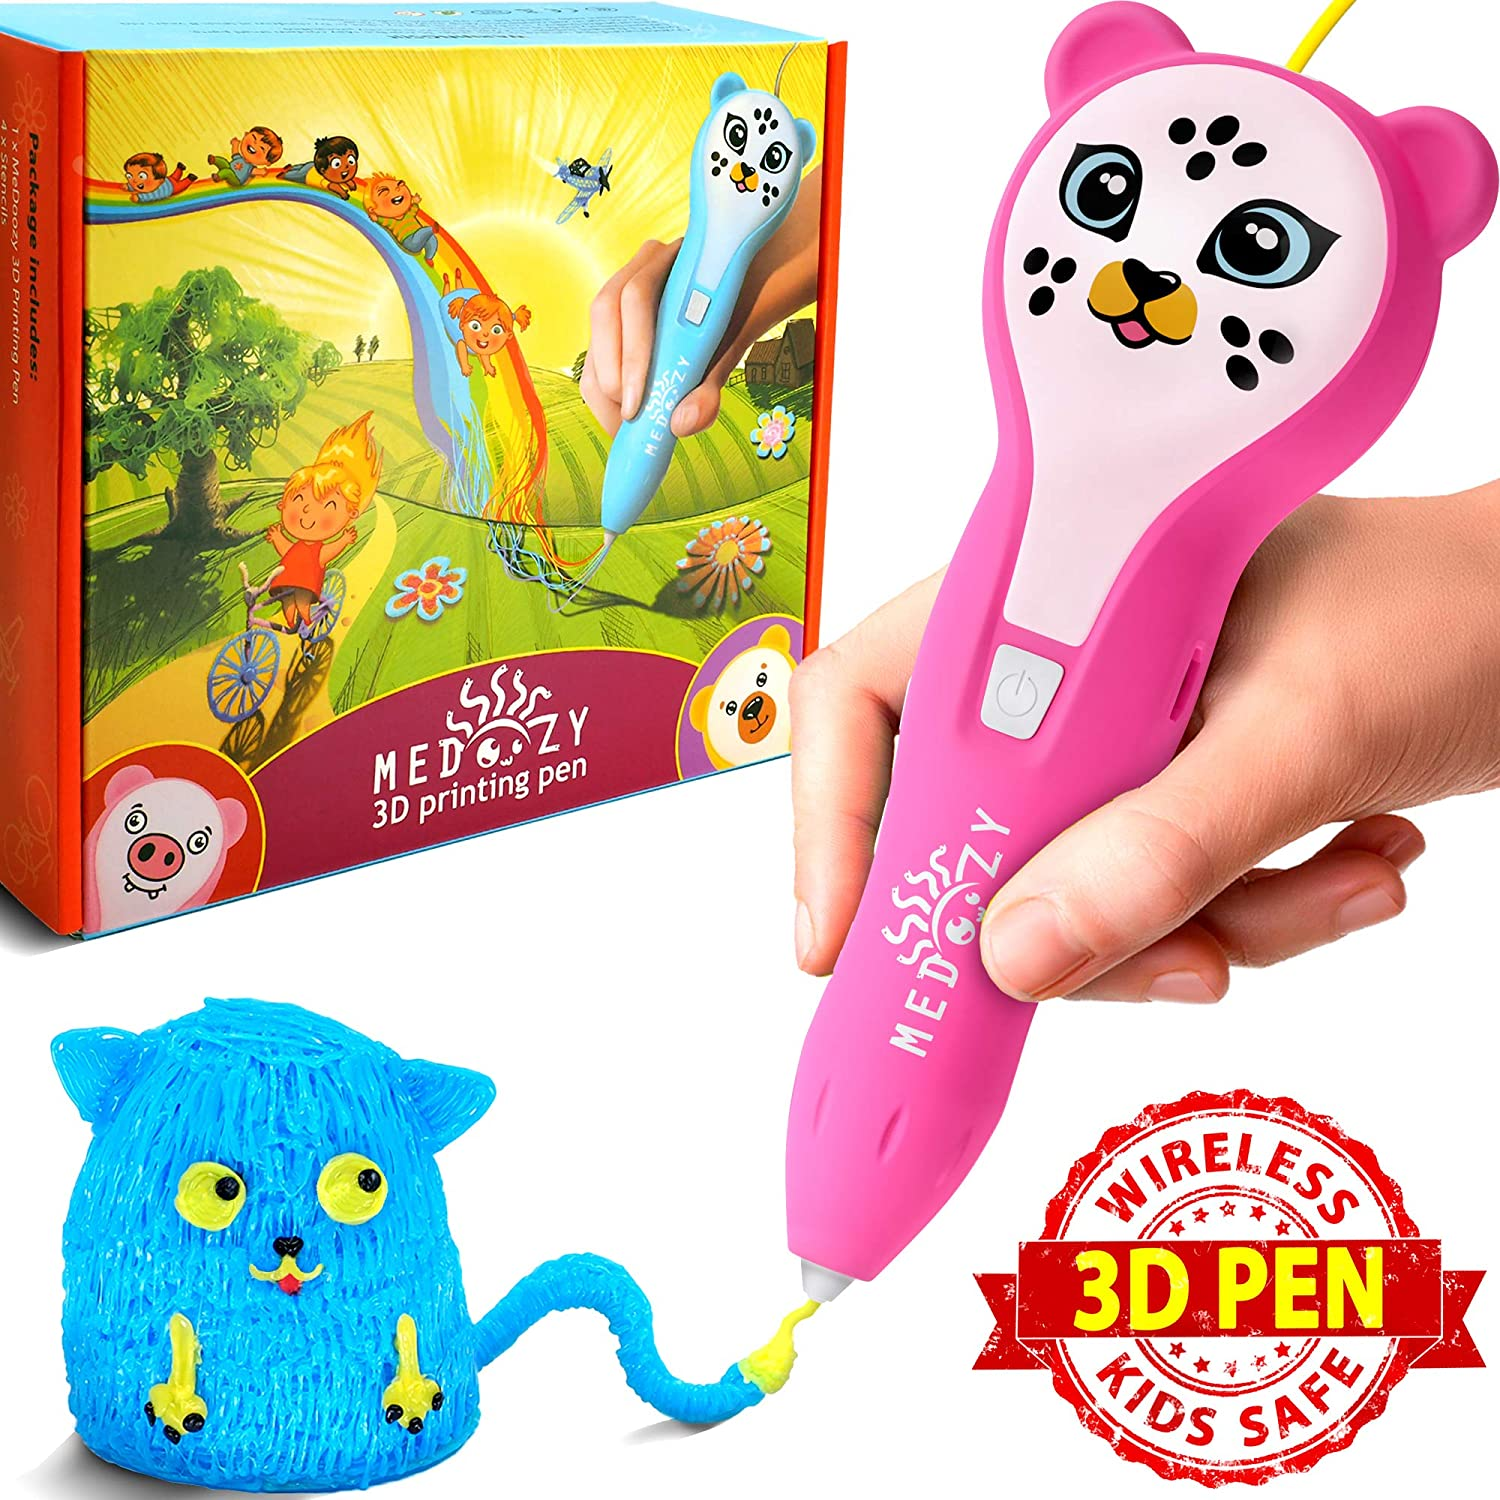 MeDoozy 3D Pen Set - Ideal Girl Gifts Ideas for Birthday - Best Toys for Kids and Teens - Cool Arts and Crafts Girls Toys - Top Stem 3D Printing kit - Fun Educational Learning Children Present